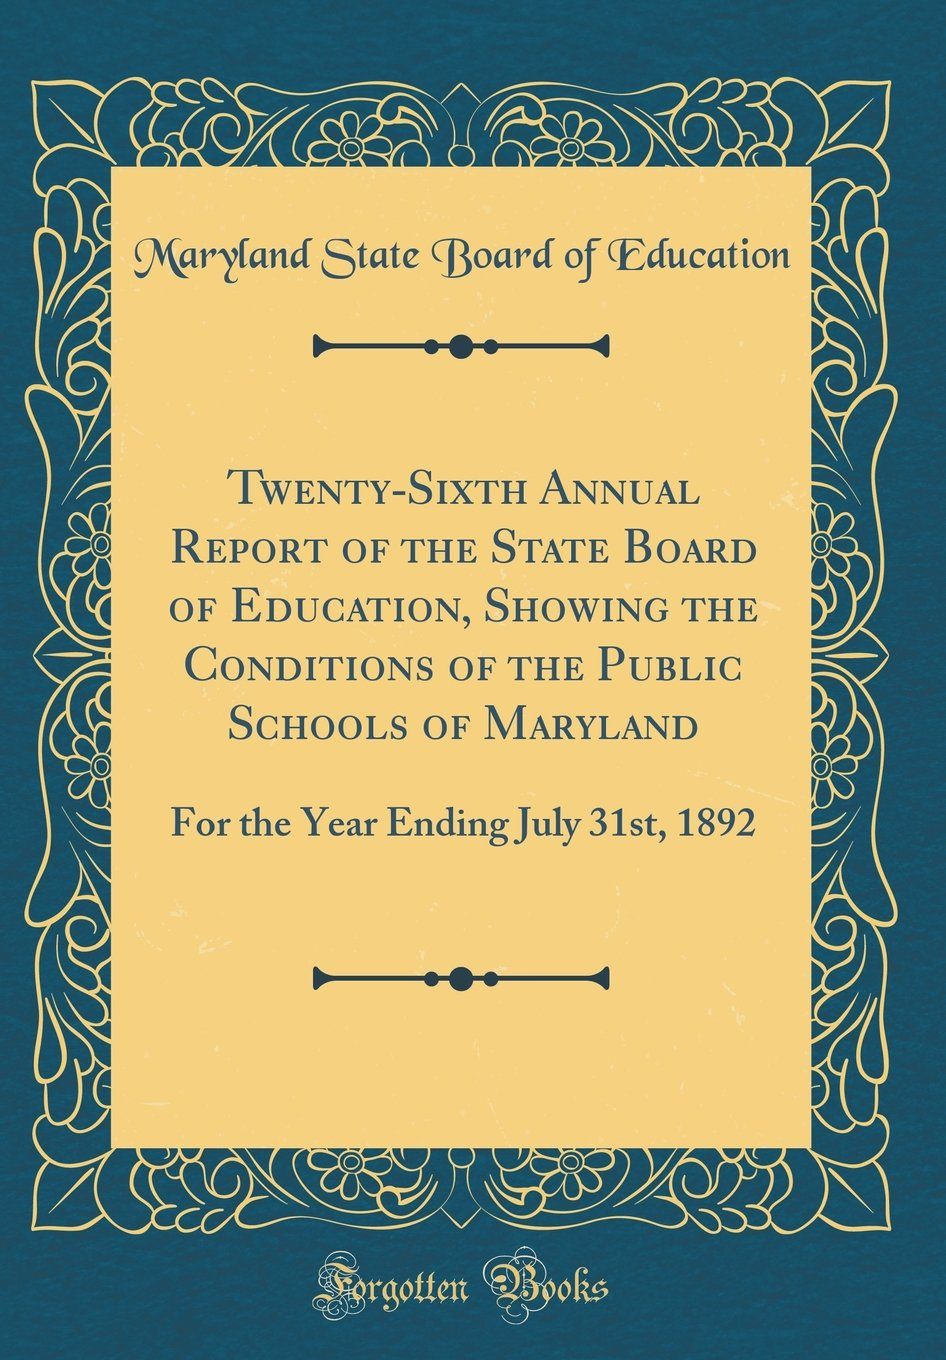 Twenty-Sixth Annual Report of the State Board of Education, Showing the Conditions of the Public Schools of Maryland: For the Year Ending July 31st, 1892 (Classic Reprint) PDF